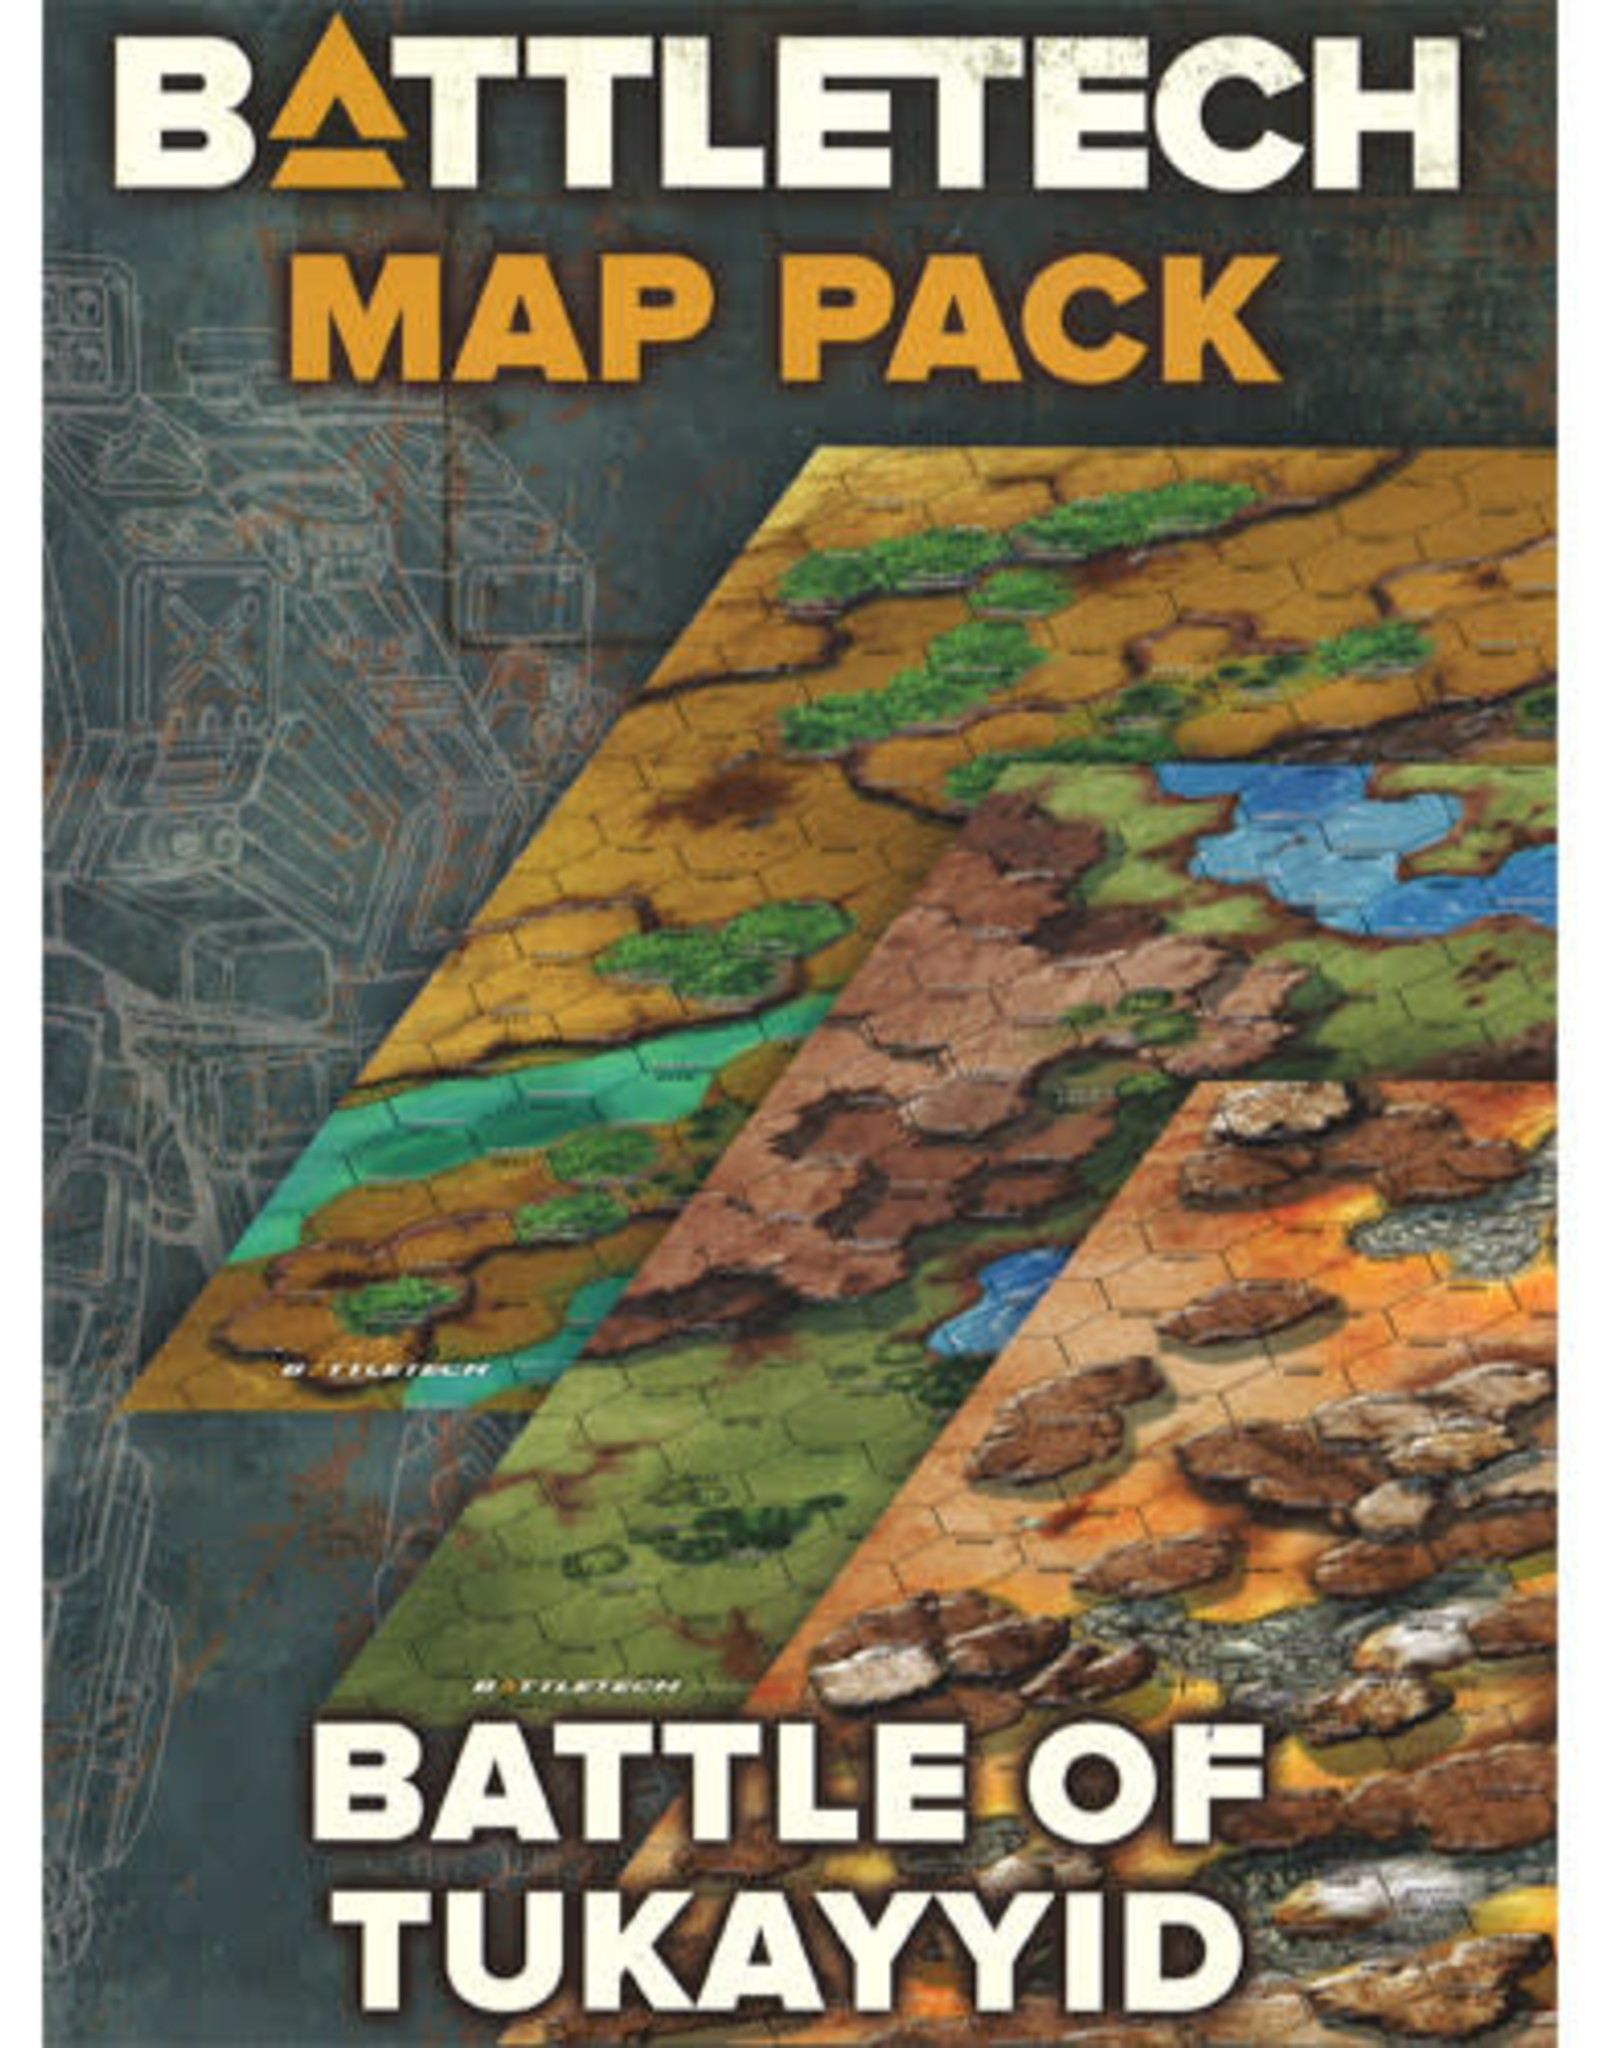 CATALYST GAME LABS Battletech: Map Pack: Battle of Tukayyid